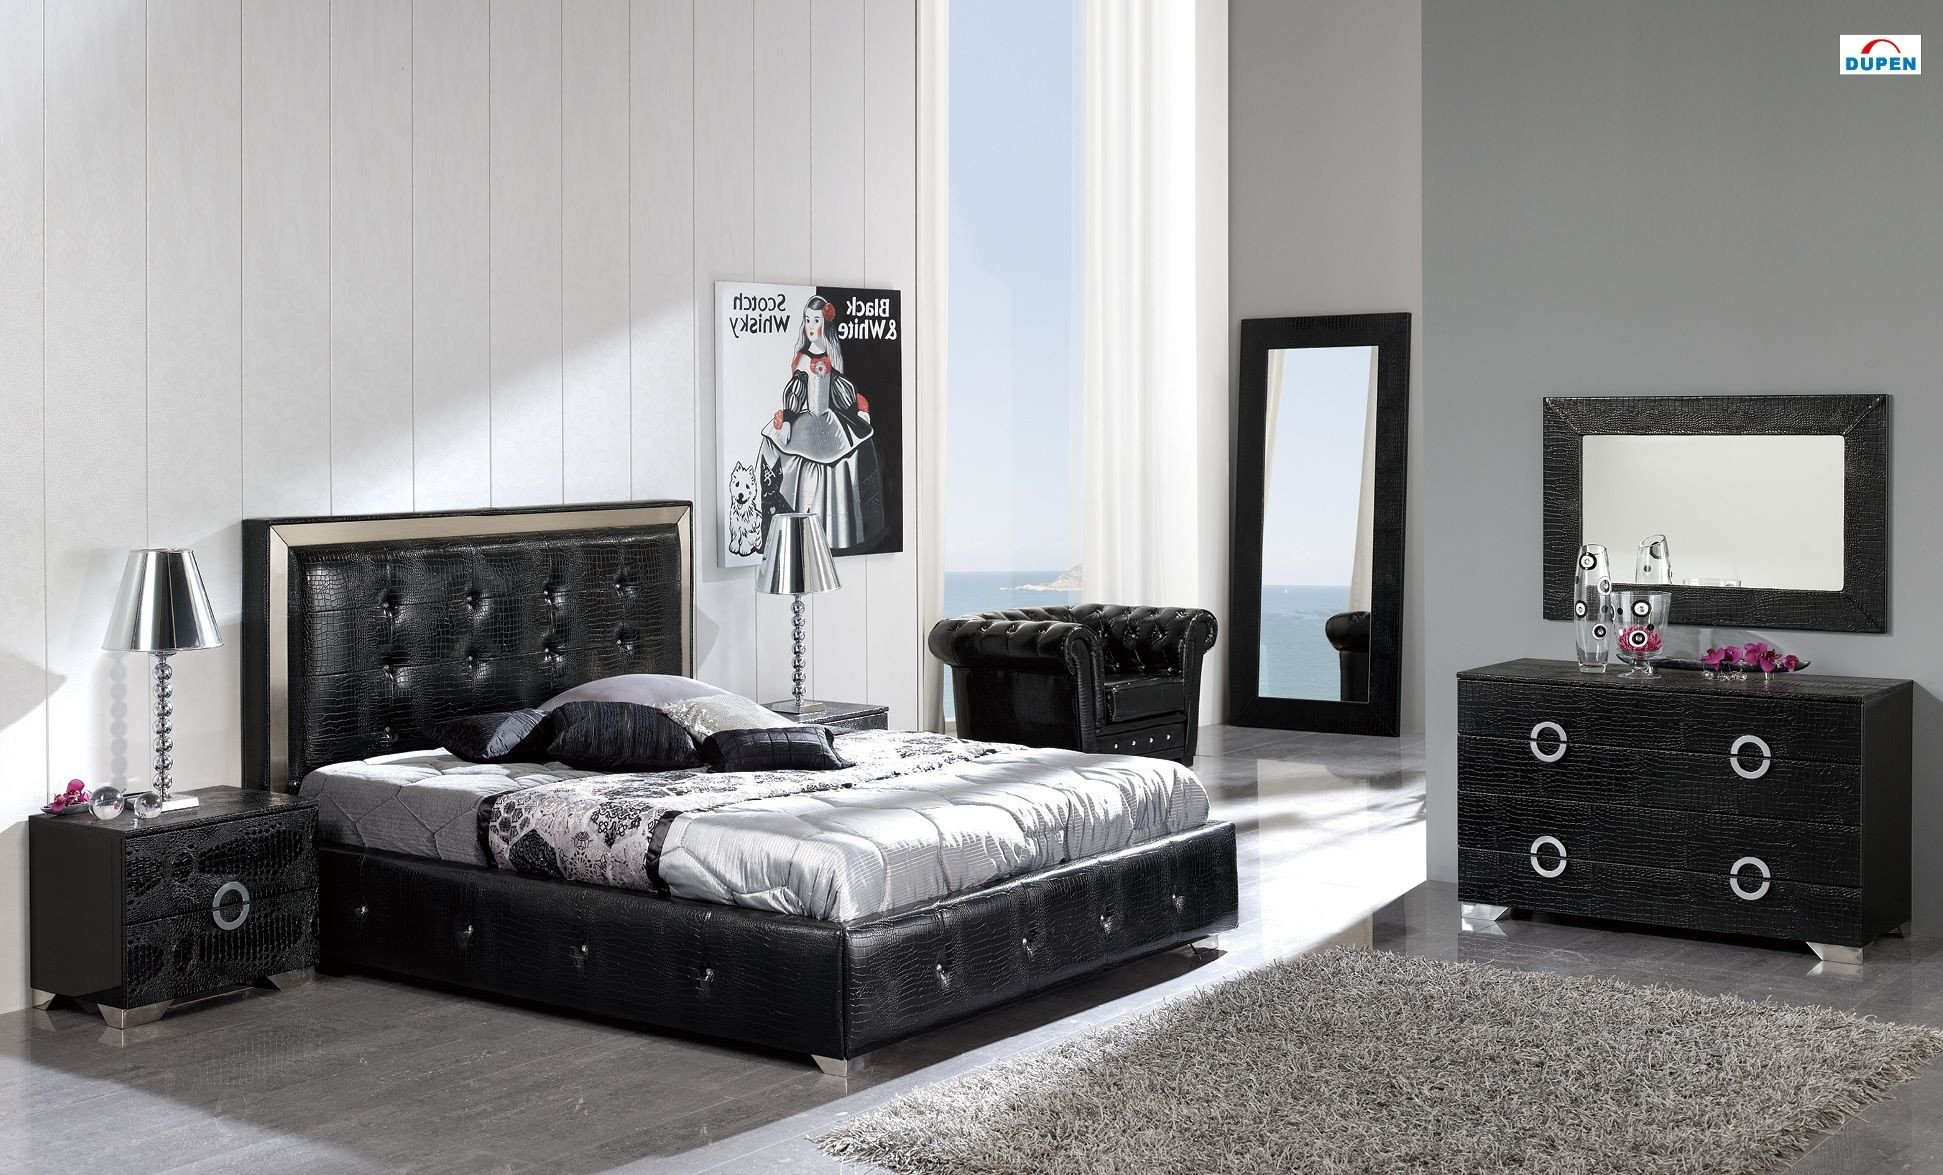 All Black Bedroom Set Beautiful Coco Bedroom Set In Black by Dupen Made In Spain